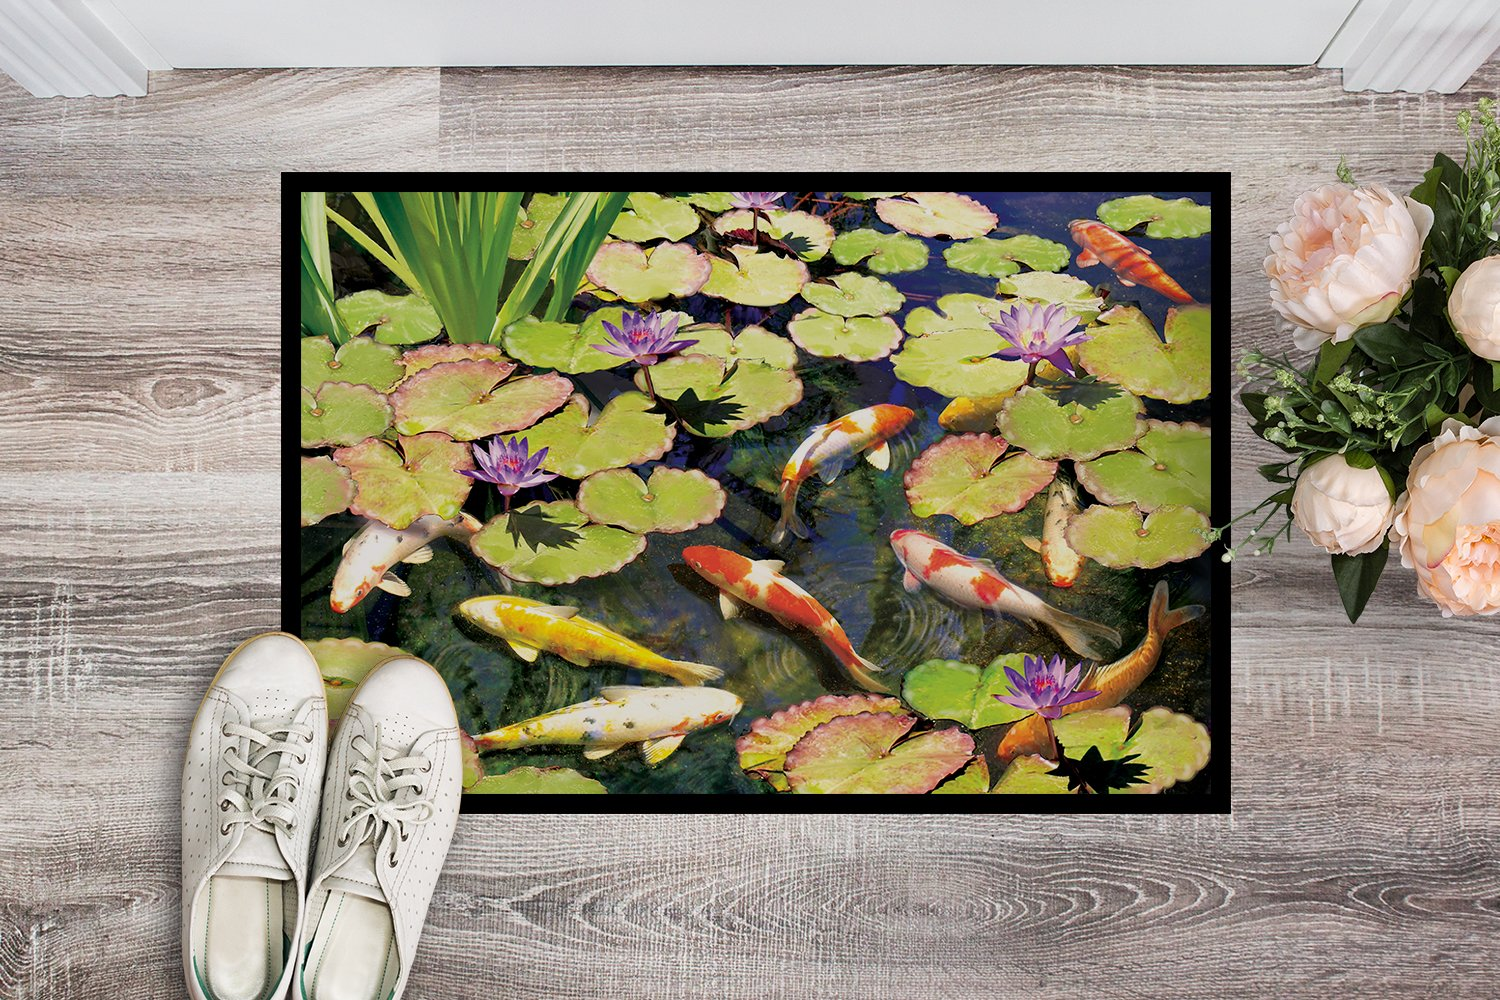 Koi Pond IV Indoor or Outdoor Mat 24x36 PRS4049JMAT by Caroline's Treasures